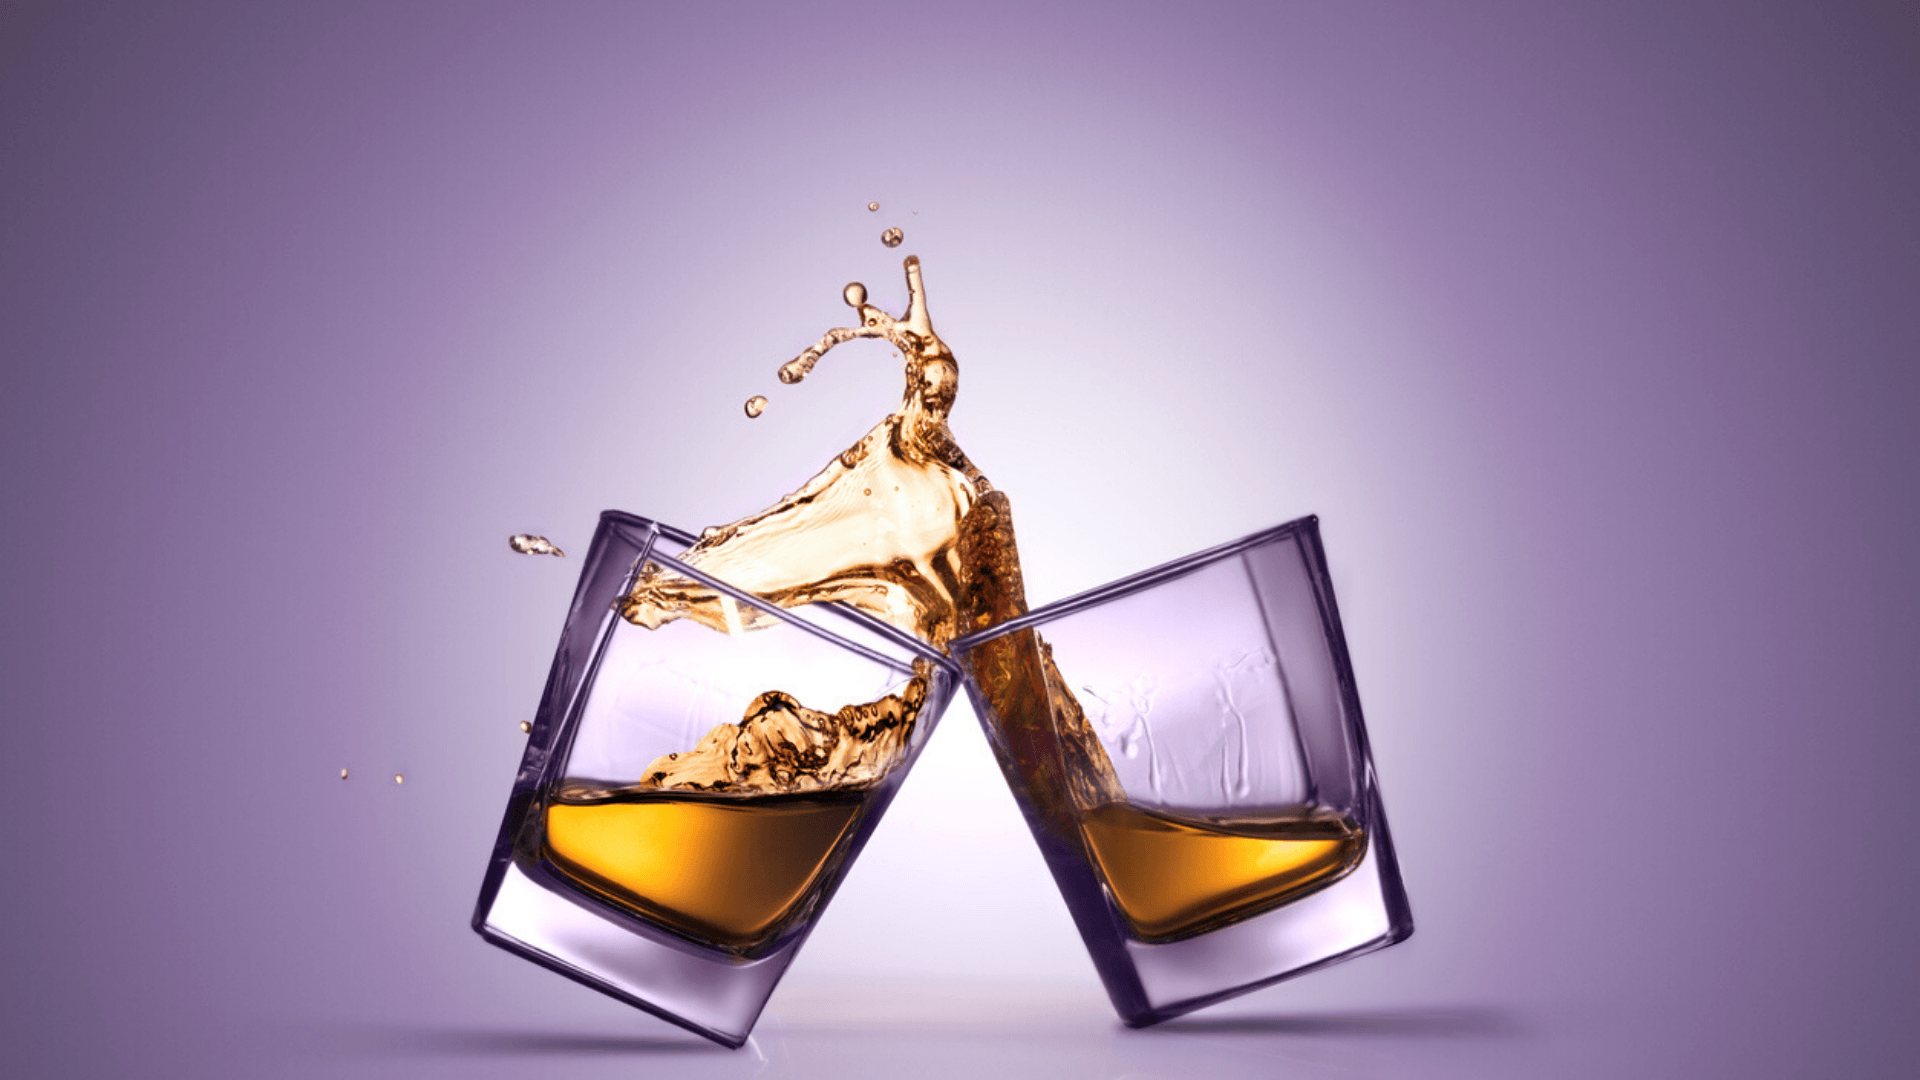 Two glasses of whiskey splashing after a cheers.